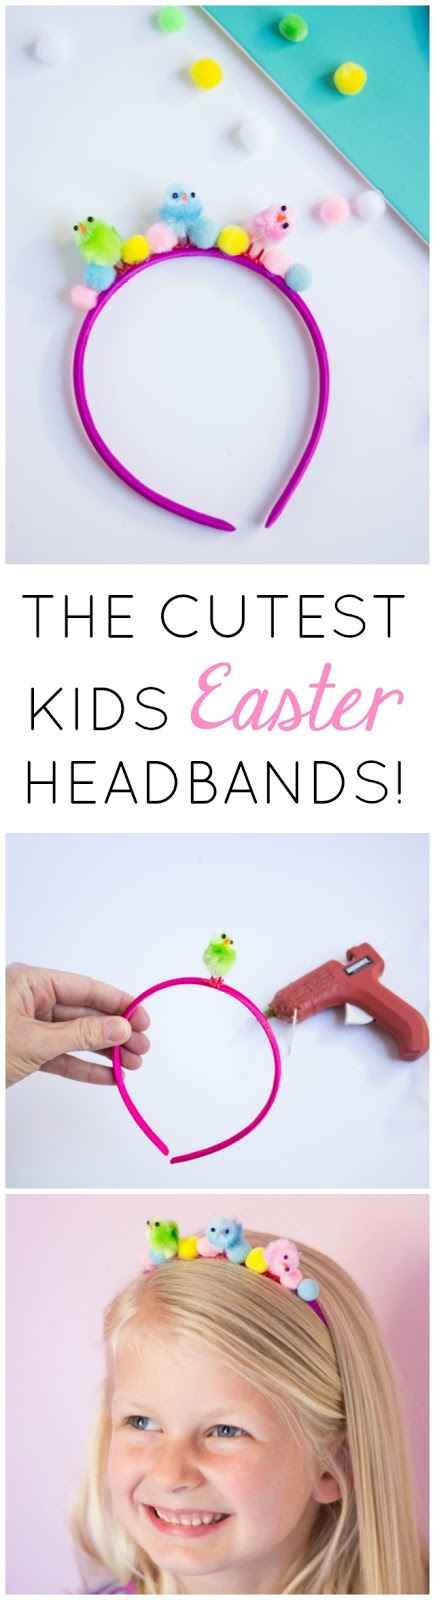 These DIY baby chick headbands are the perfect kids craft for an Easter party or egg hunt!